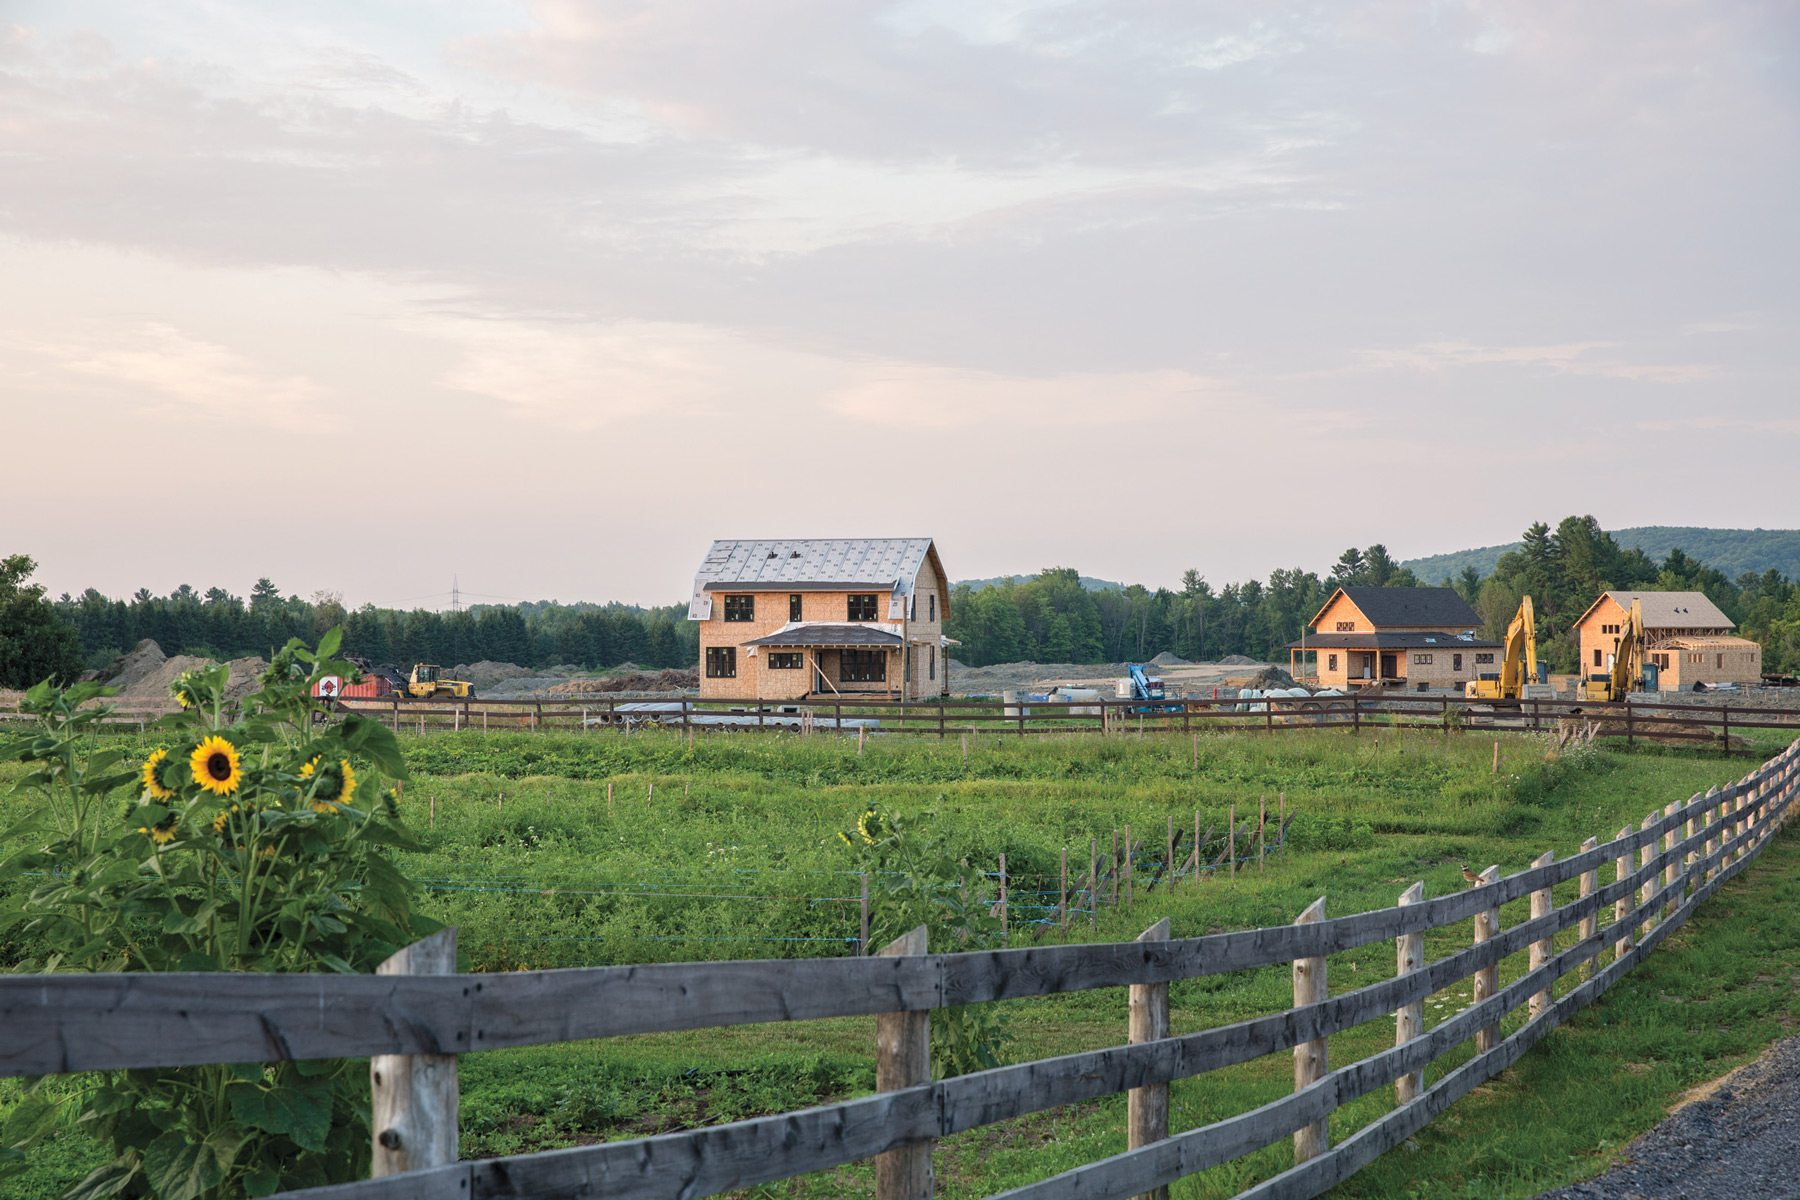 Hendrick Farm is resurrecting the concept of a true village — houses surround a working farm and are connected by roads designed to encourage interaction among neighbours. Photography by Justin Van Leeuwen